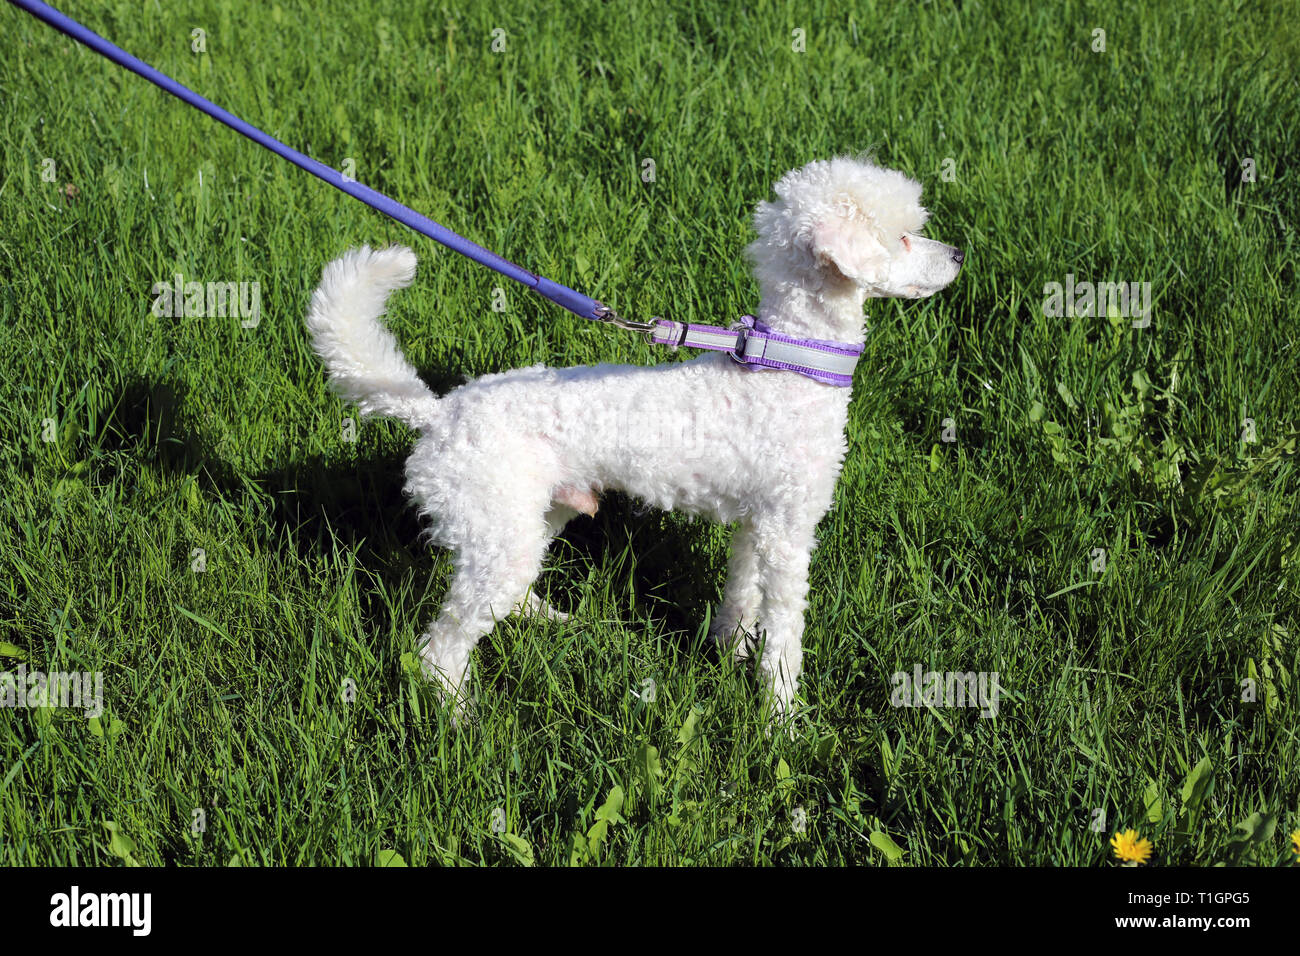 White young miniature poodle dog photographed during a sunny day outdoors. The dog has purple leash and there is green grass on the background. - Stock Image